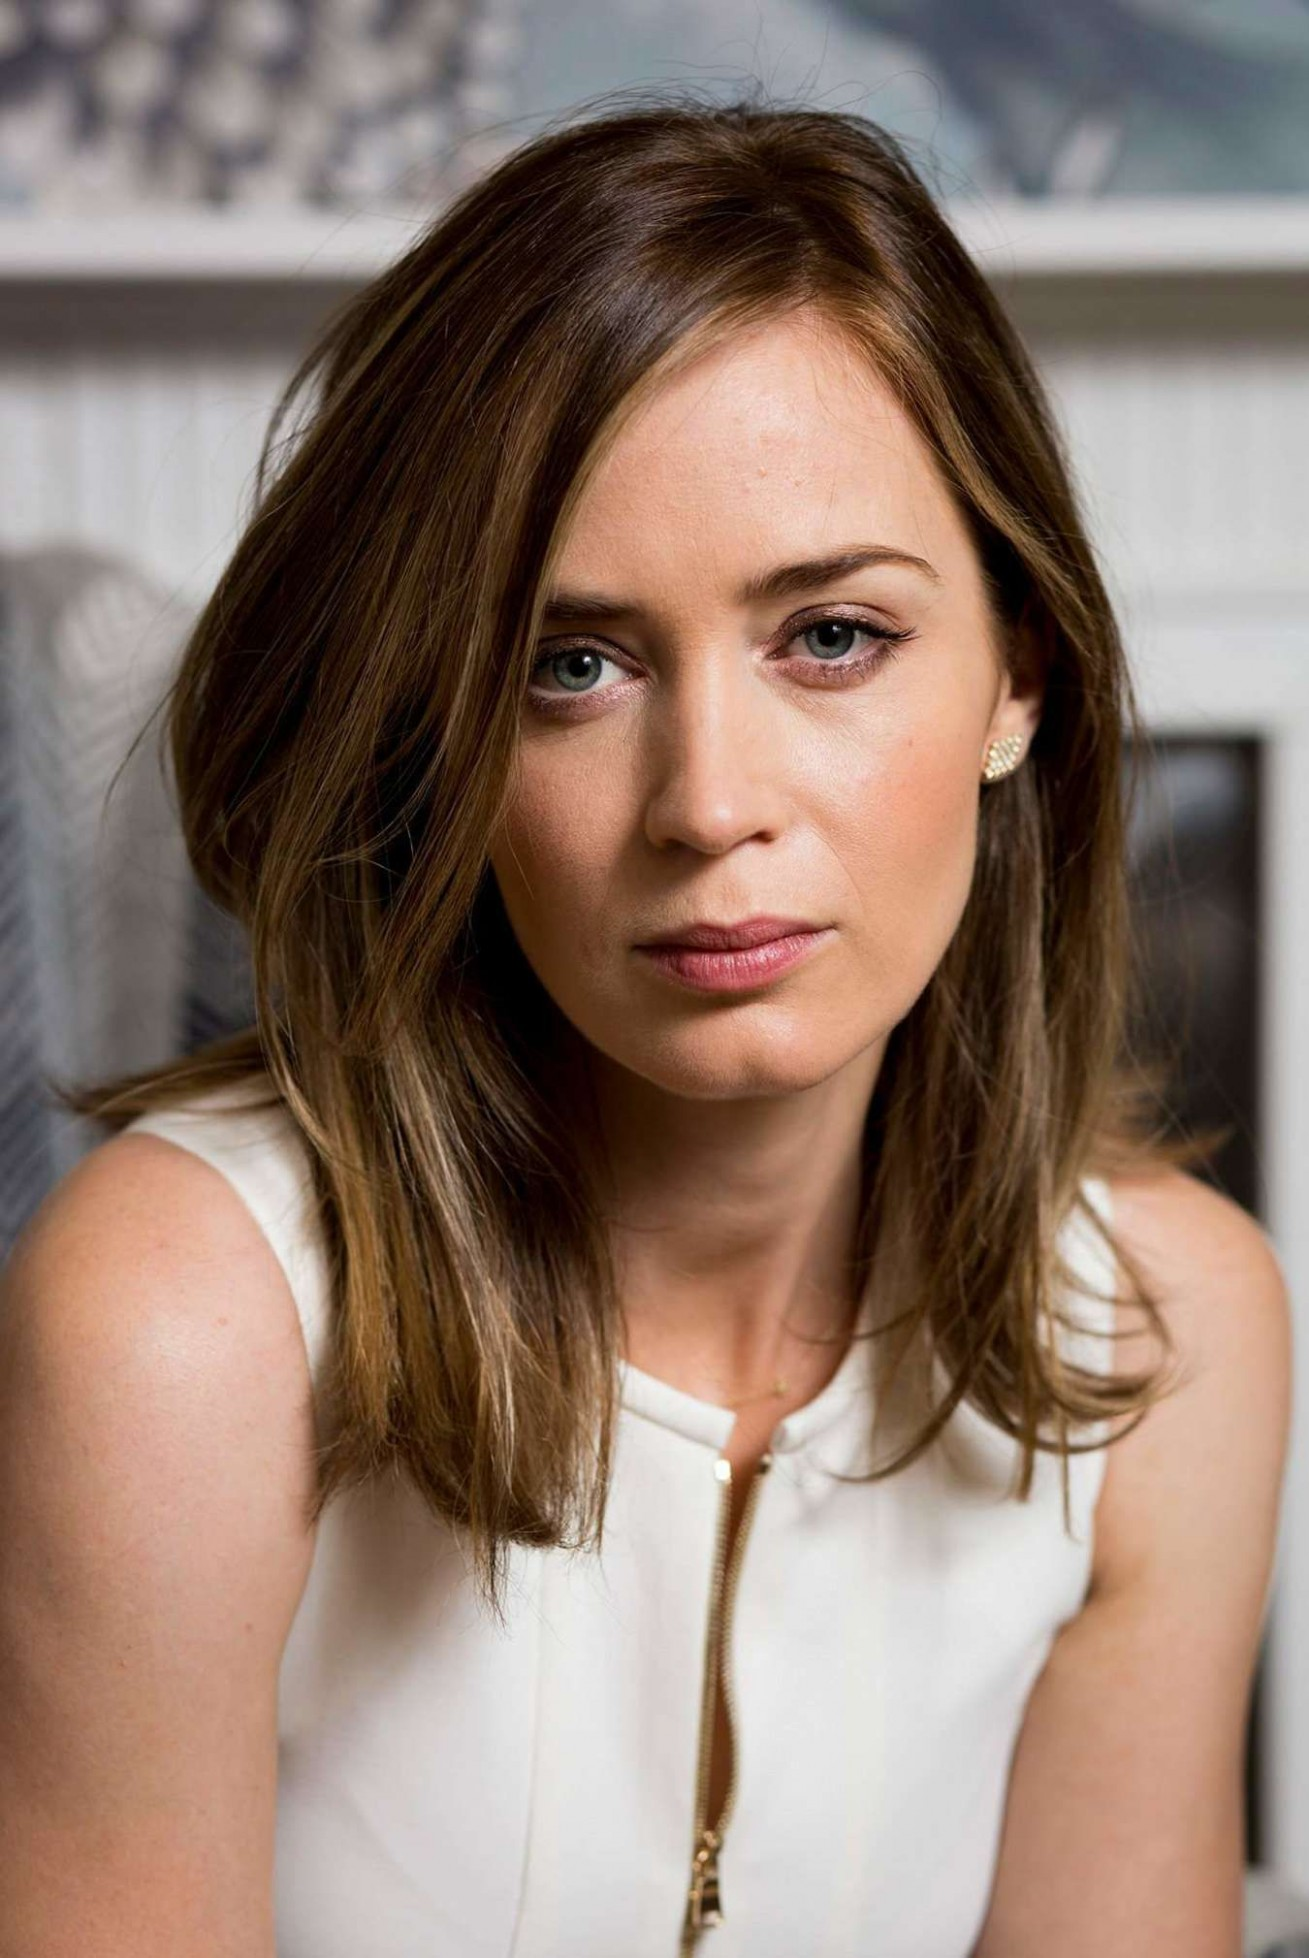 Pin By Mark Welbourne On Emily Blunt Emily Blunt, Blunt Hair Emily Blunt Haircut